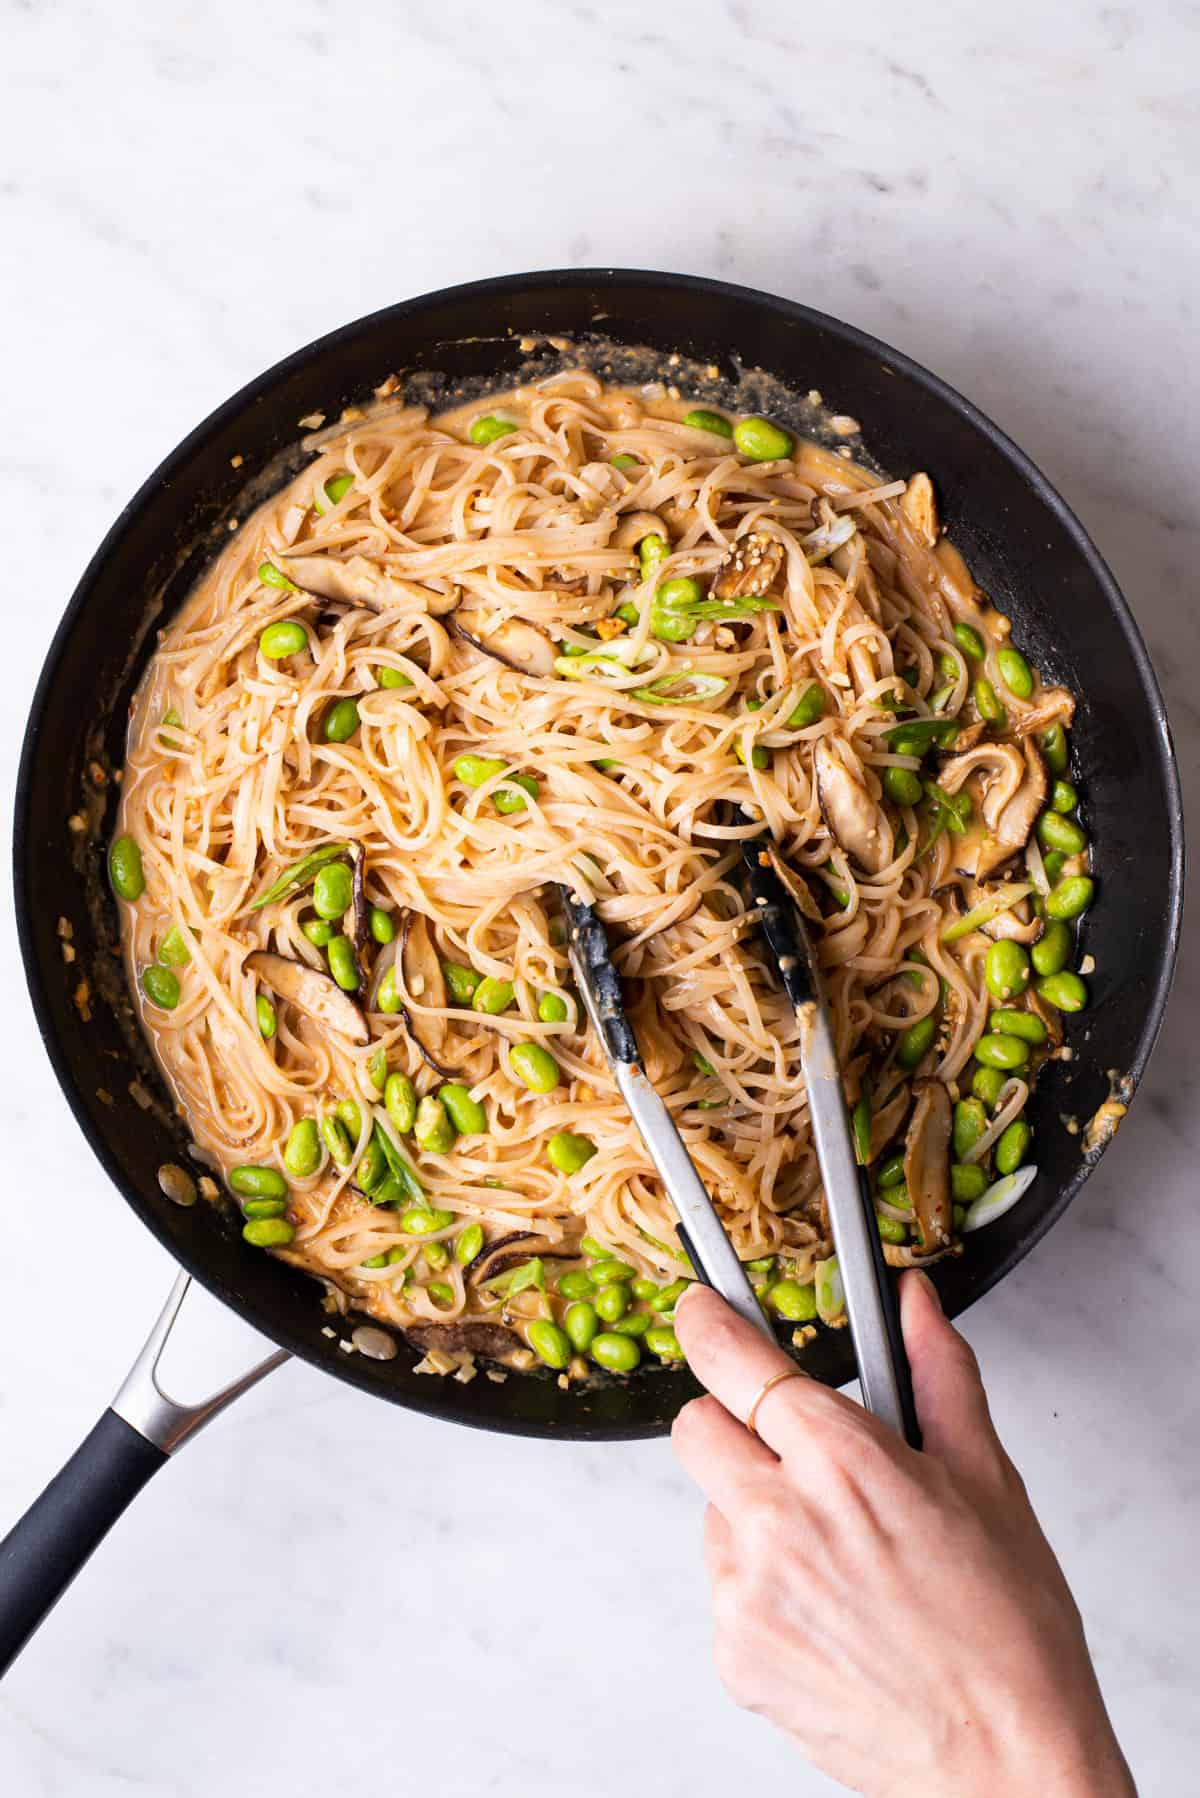 Woman's hand tossing creamy peanut noodles in a skillet with tongs.